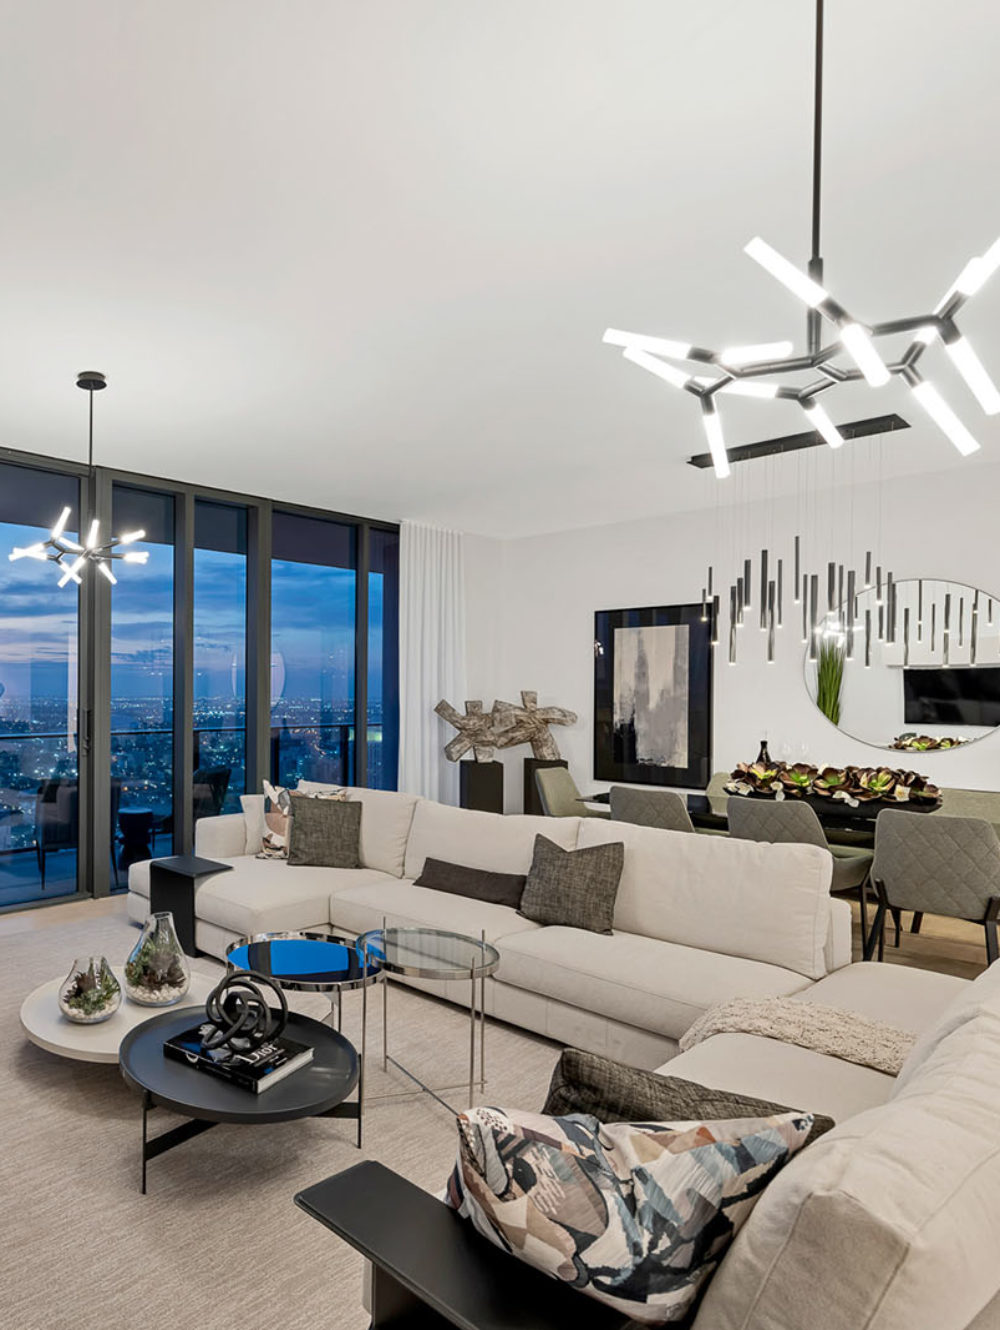 Interior view of Brickell Flatiron residence living room with window view of Biscayne Bay. Has beige couches and white walls.